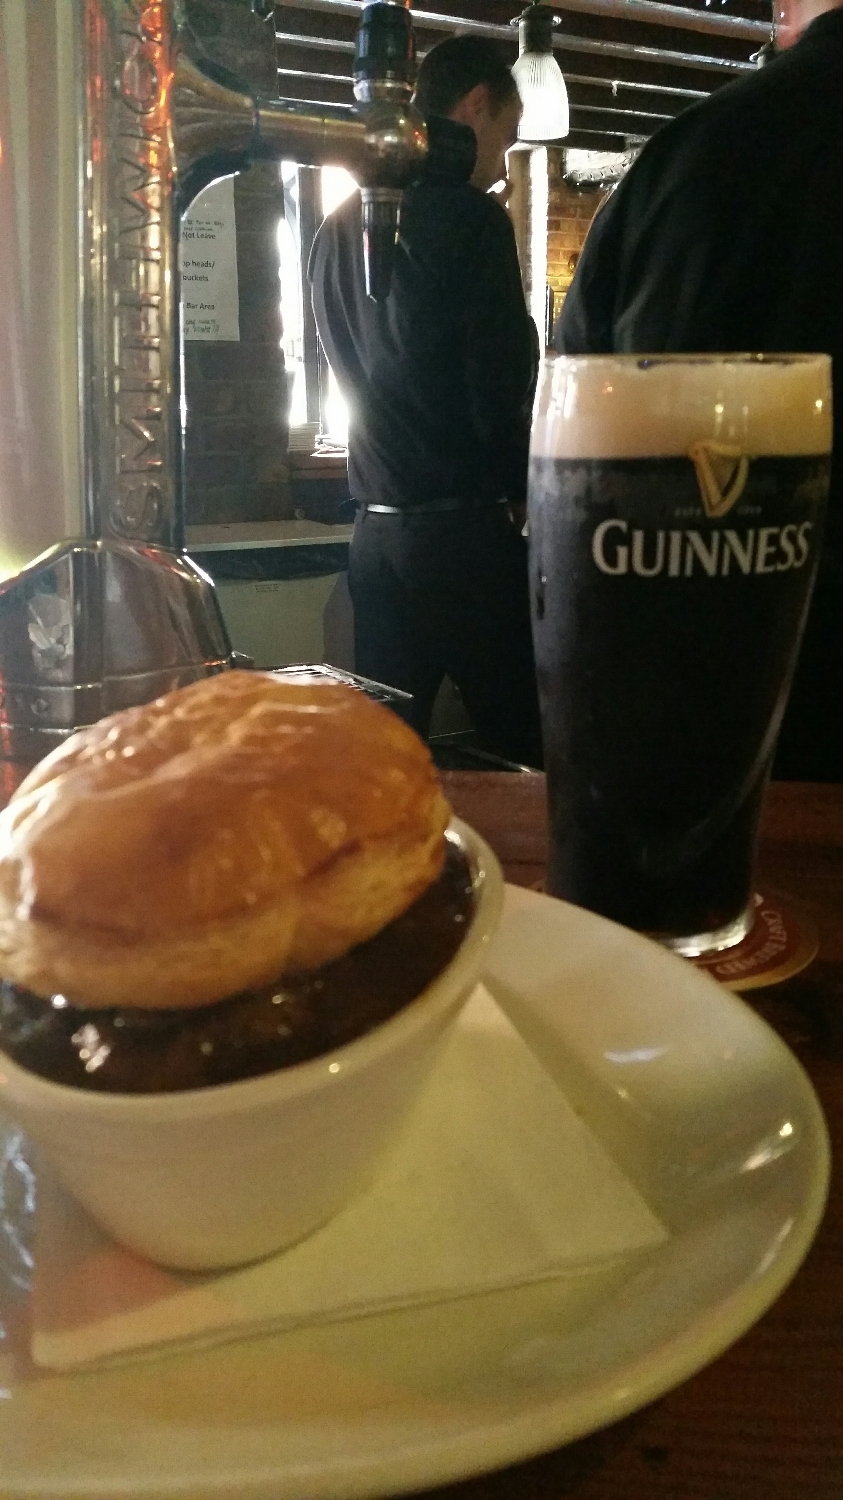 Irish beef shepards pie. Covered with a big flaky puff pastry. Then of course a Guinness to wash it all down.